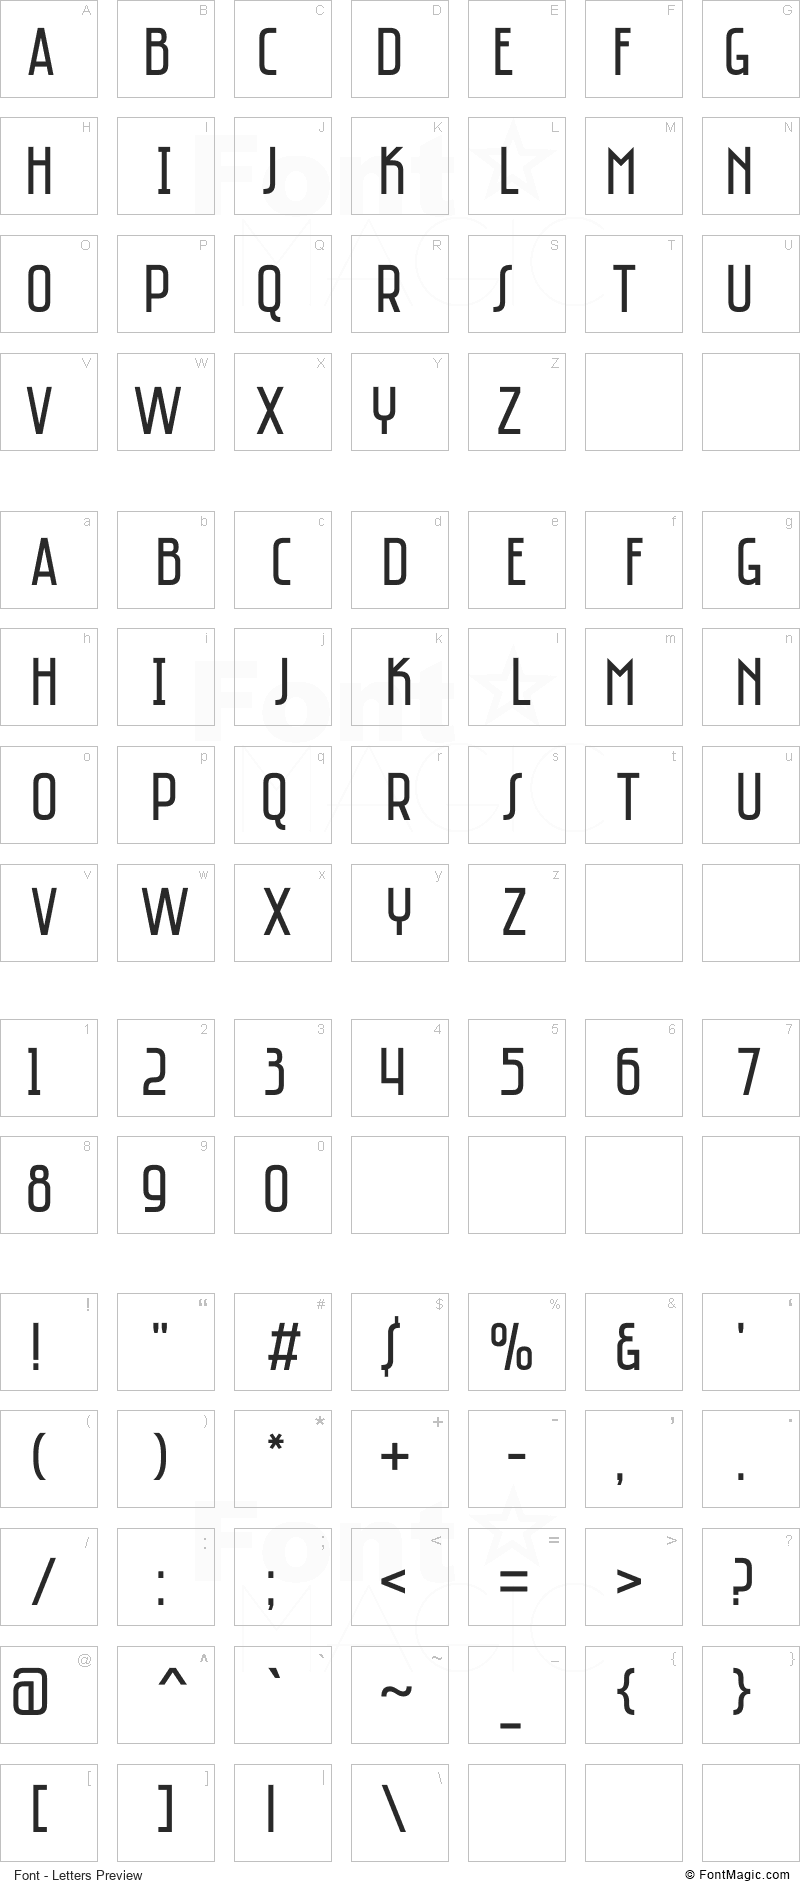 Saniretro Font - All Latters Preview Chart